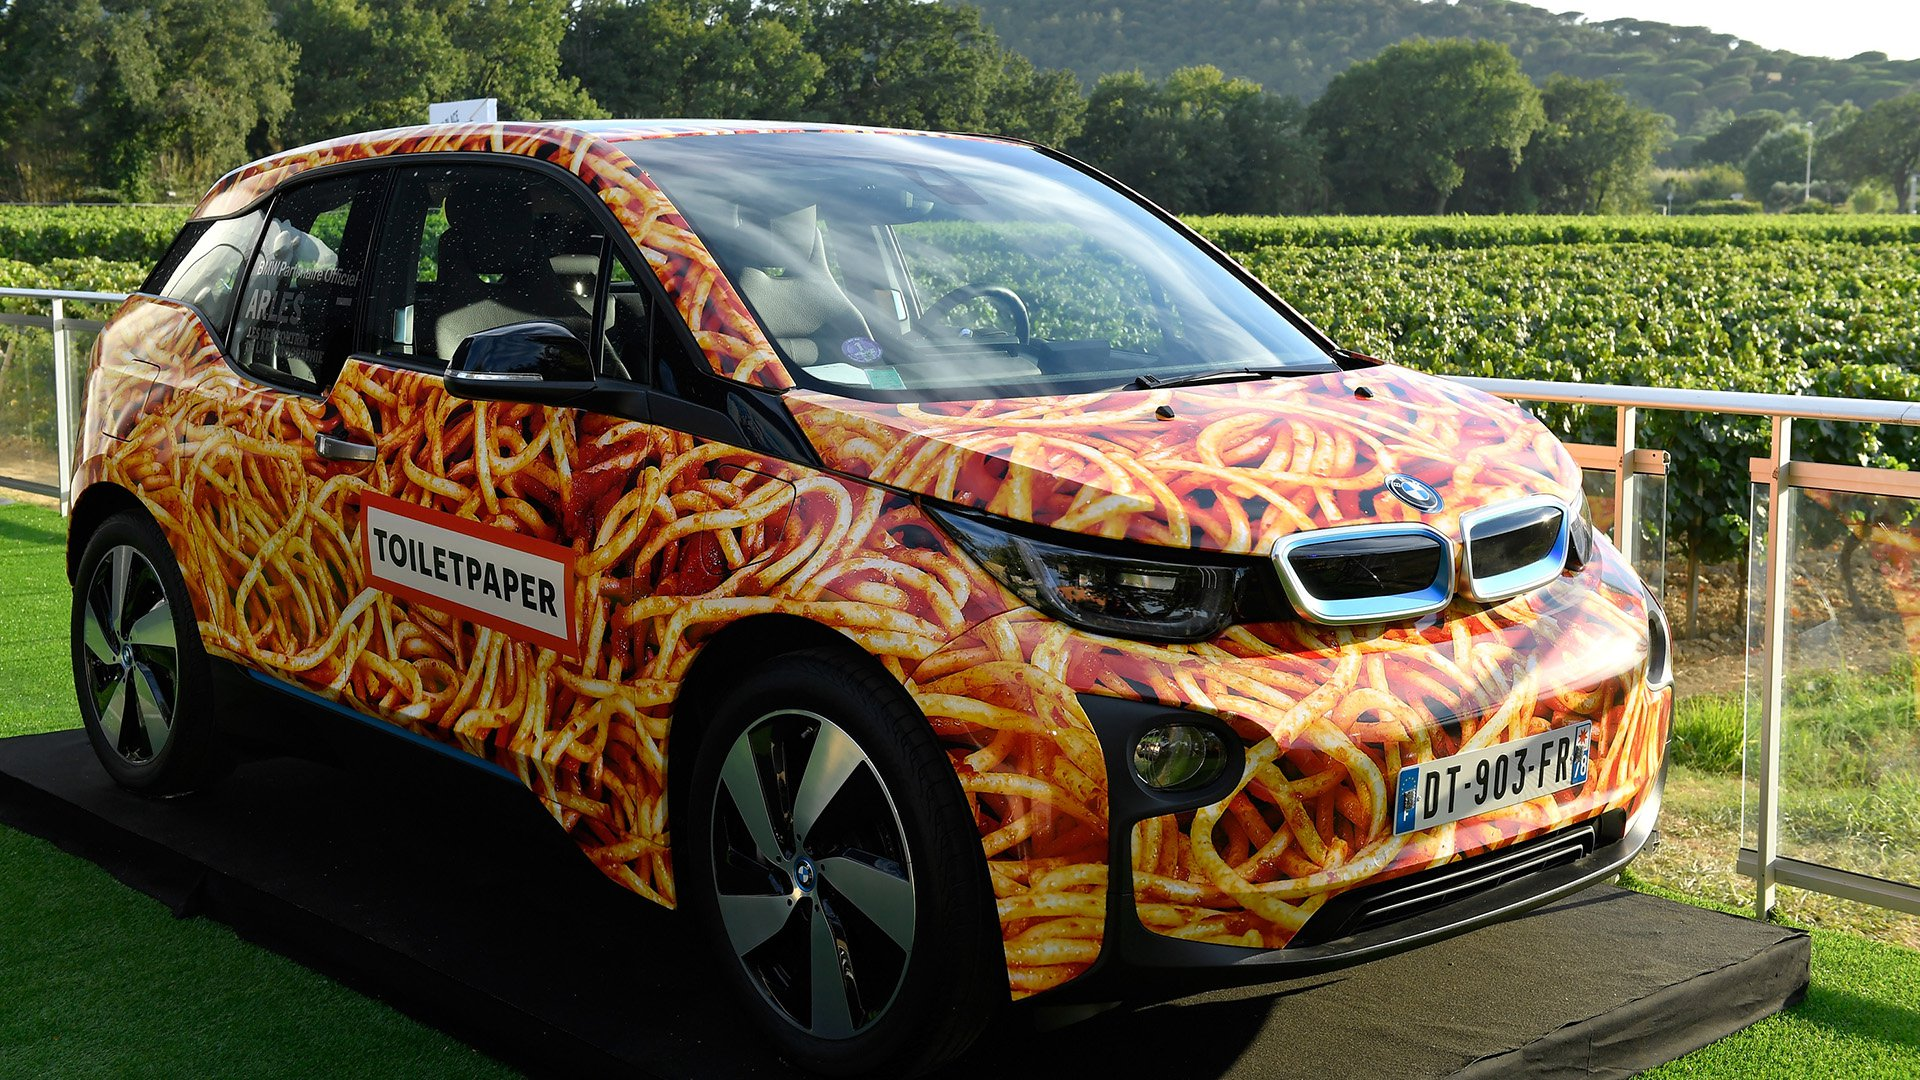 Someone Bought the BMW 'Spaghetti Car' for $117,000